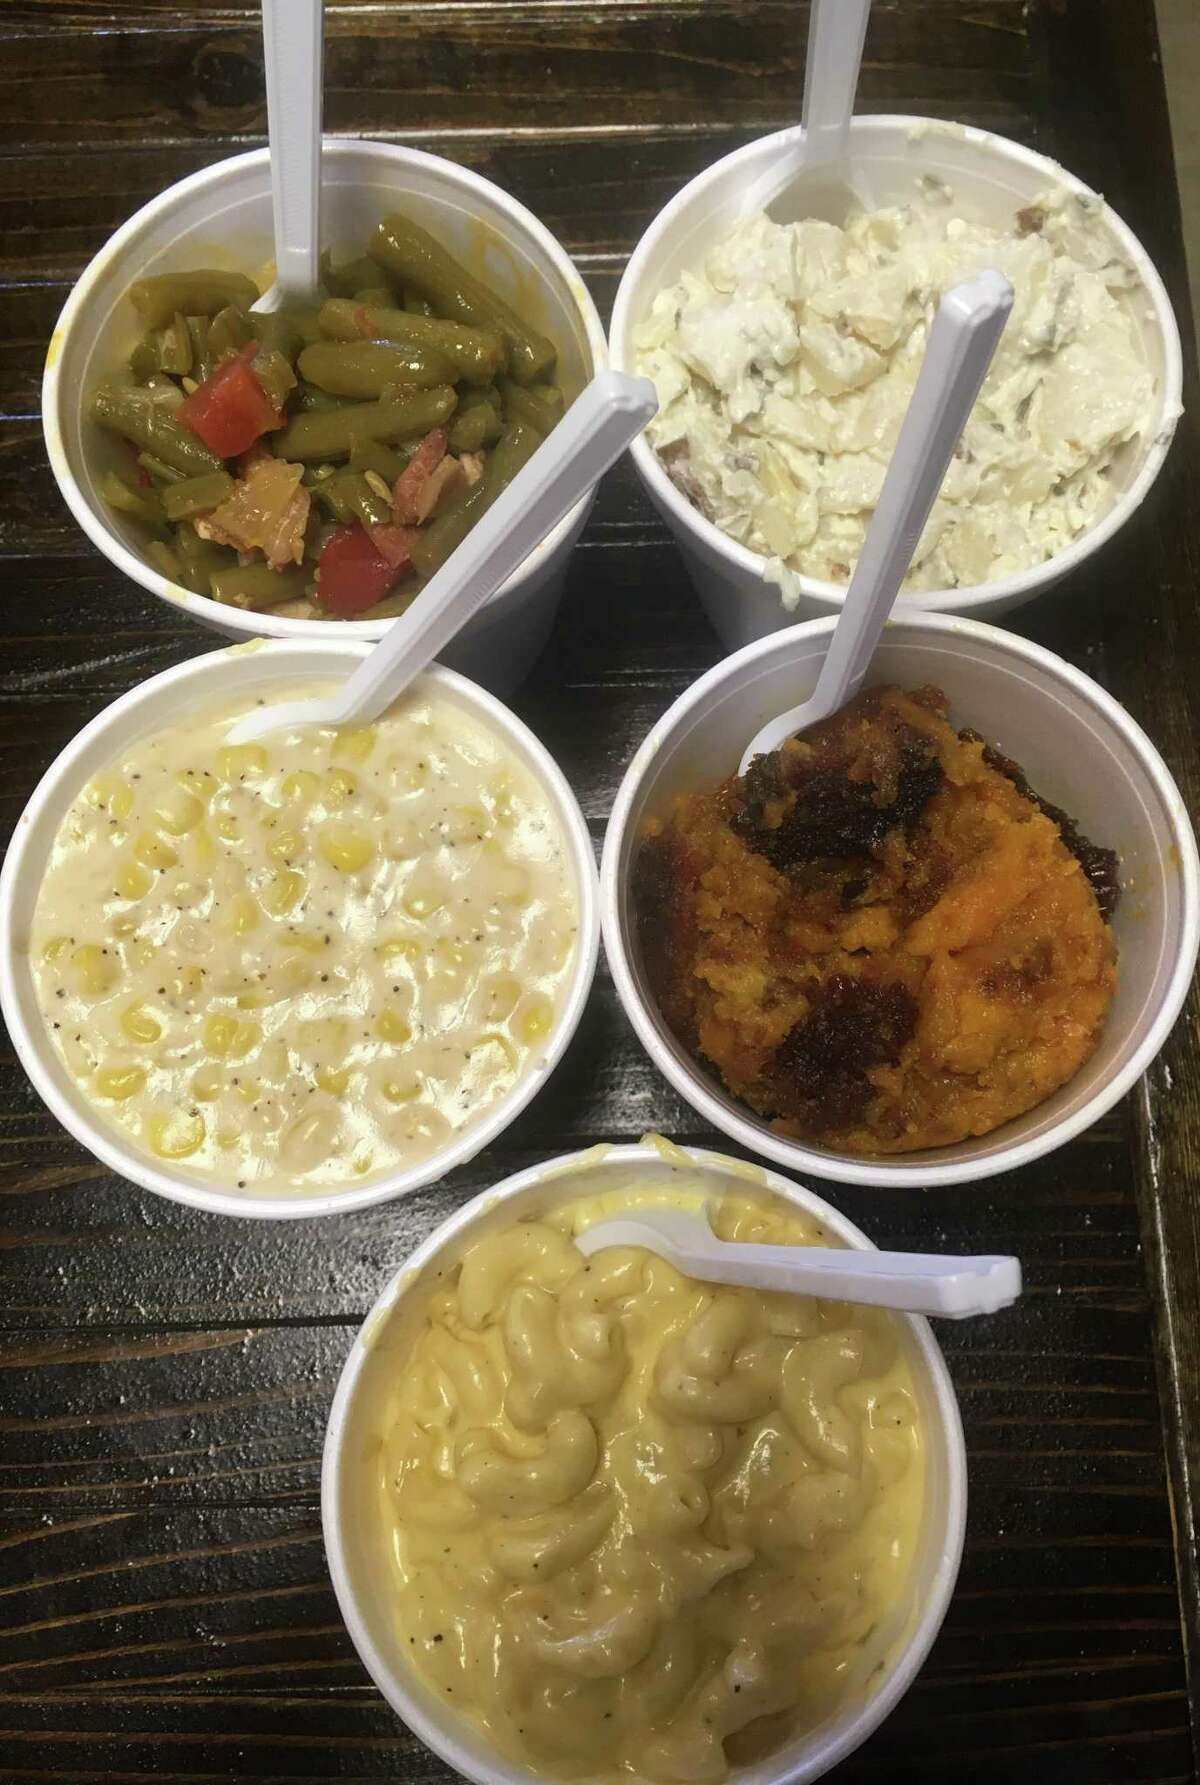 An assortment of sides at Dee Willie's BBQ Smokehouse include green beans, loaded baked potato salad, sweet potato casserole, mac-n-cheese and creamed corn.